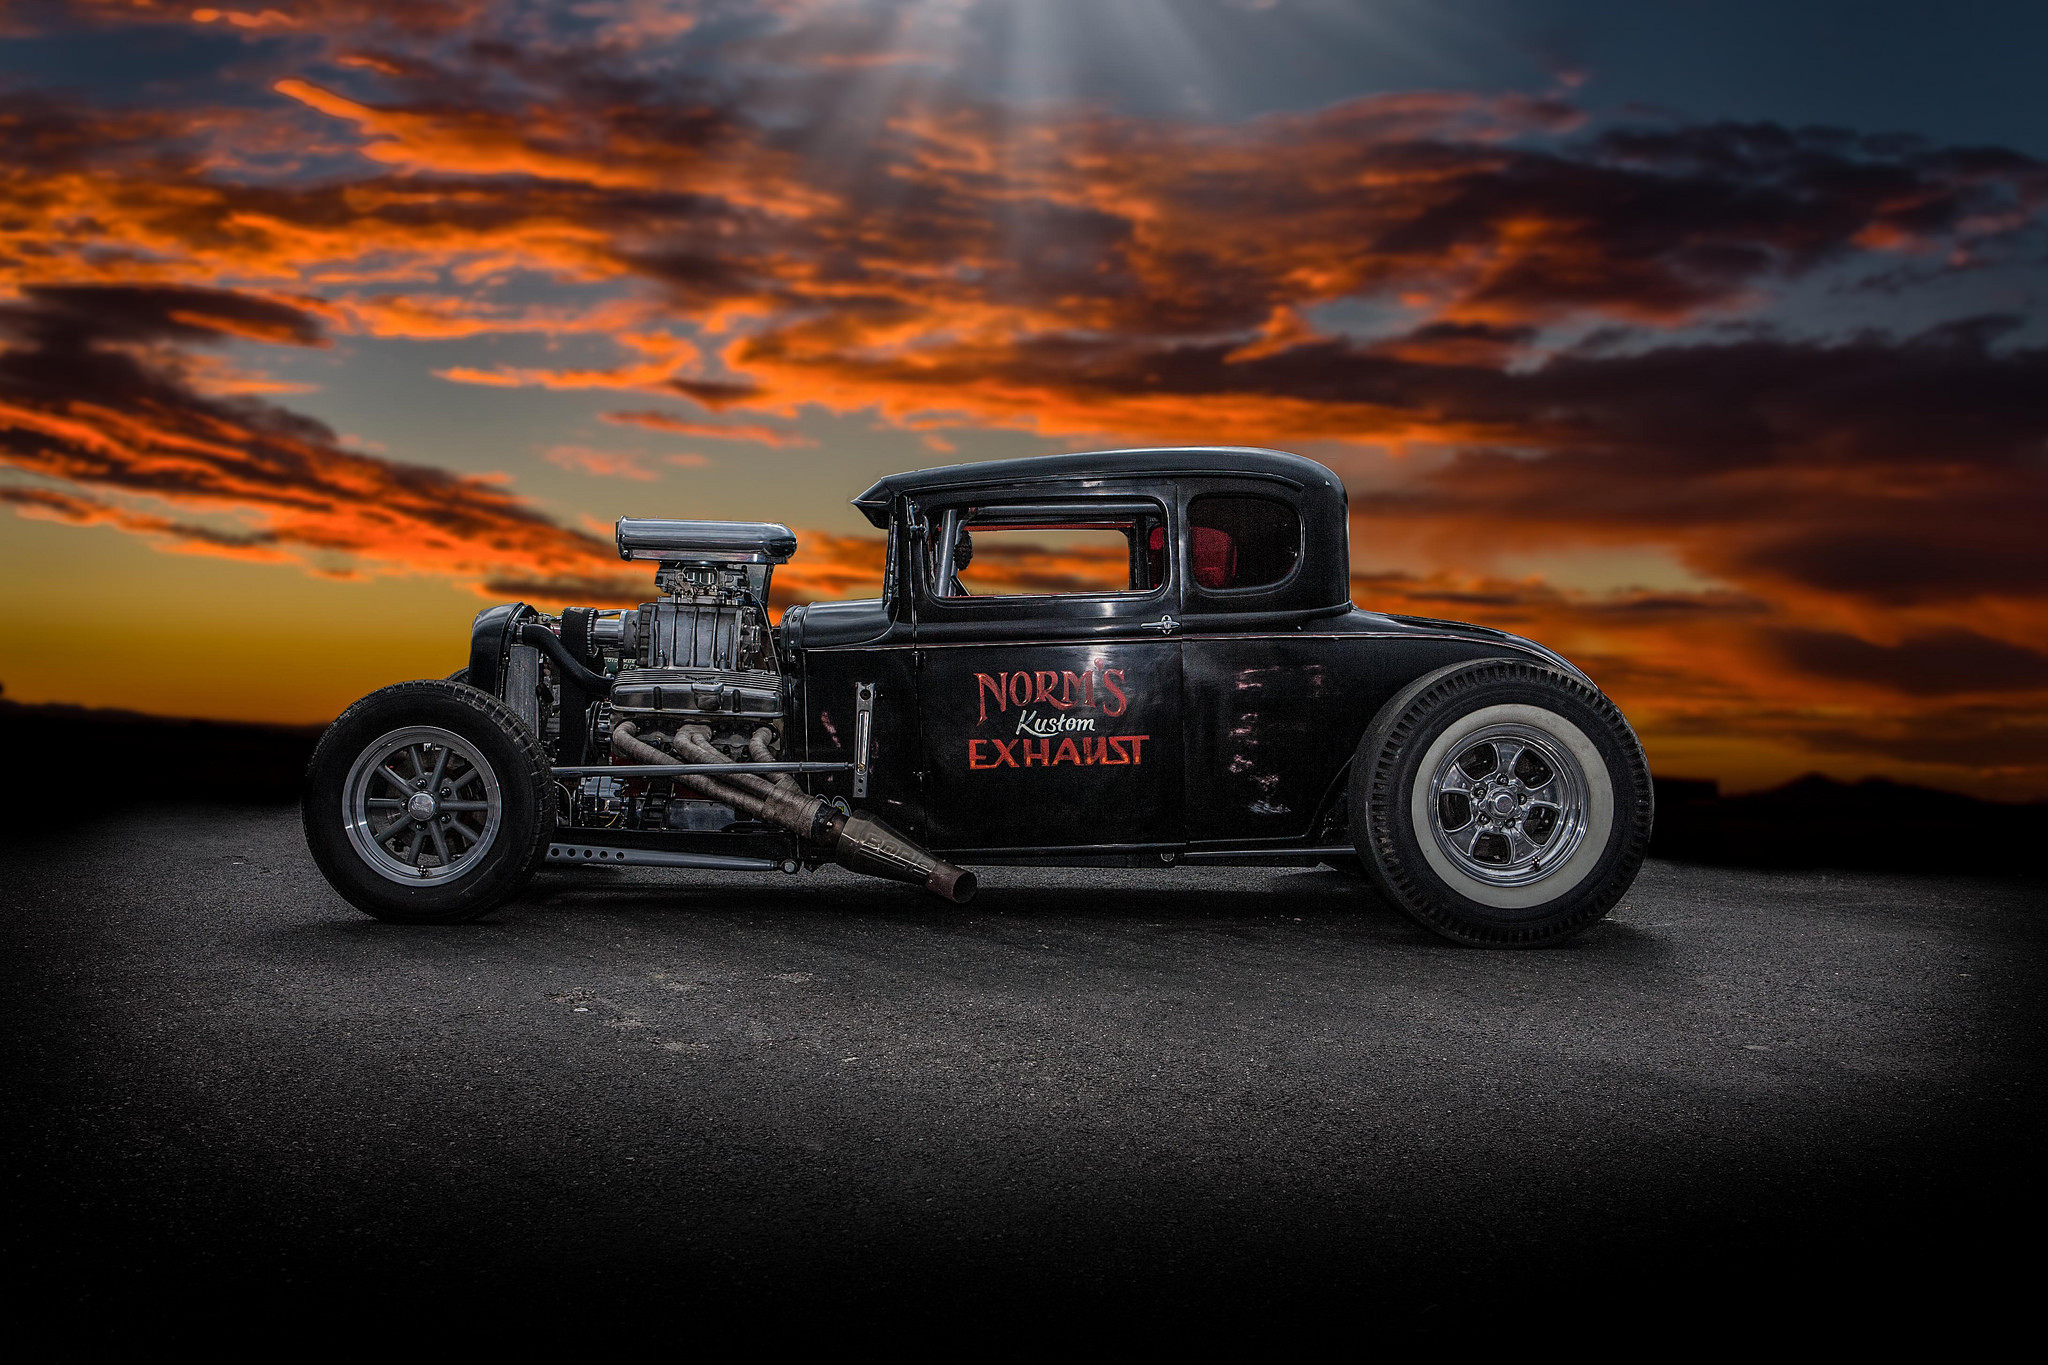 2048x1365 Vintage Hot Rod Wallpaper For Iphone for Desktop  px 832.20 KB